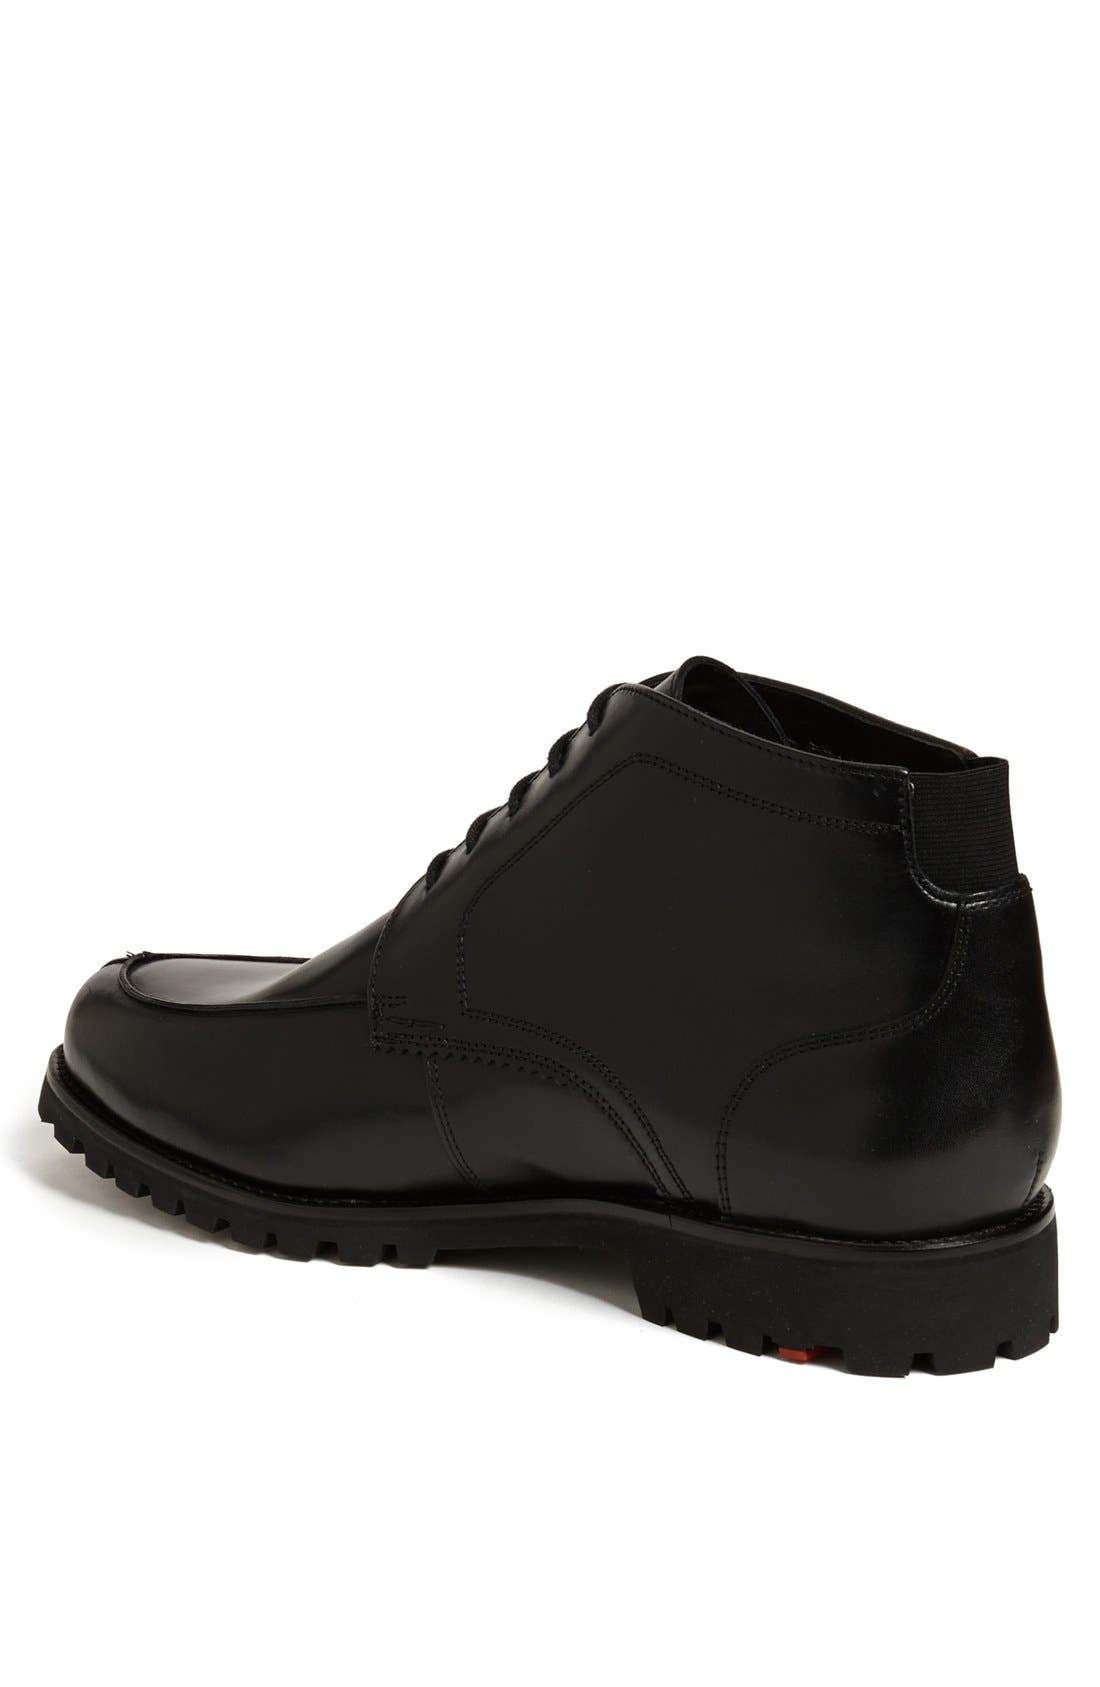 'Varello' Chukka Boot,                             Alternate thumbnail 2, color,                             001